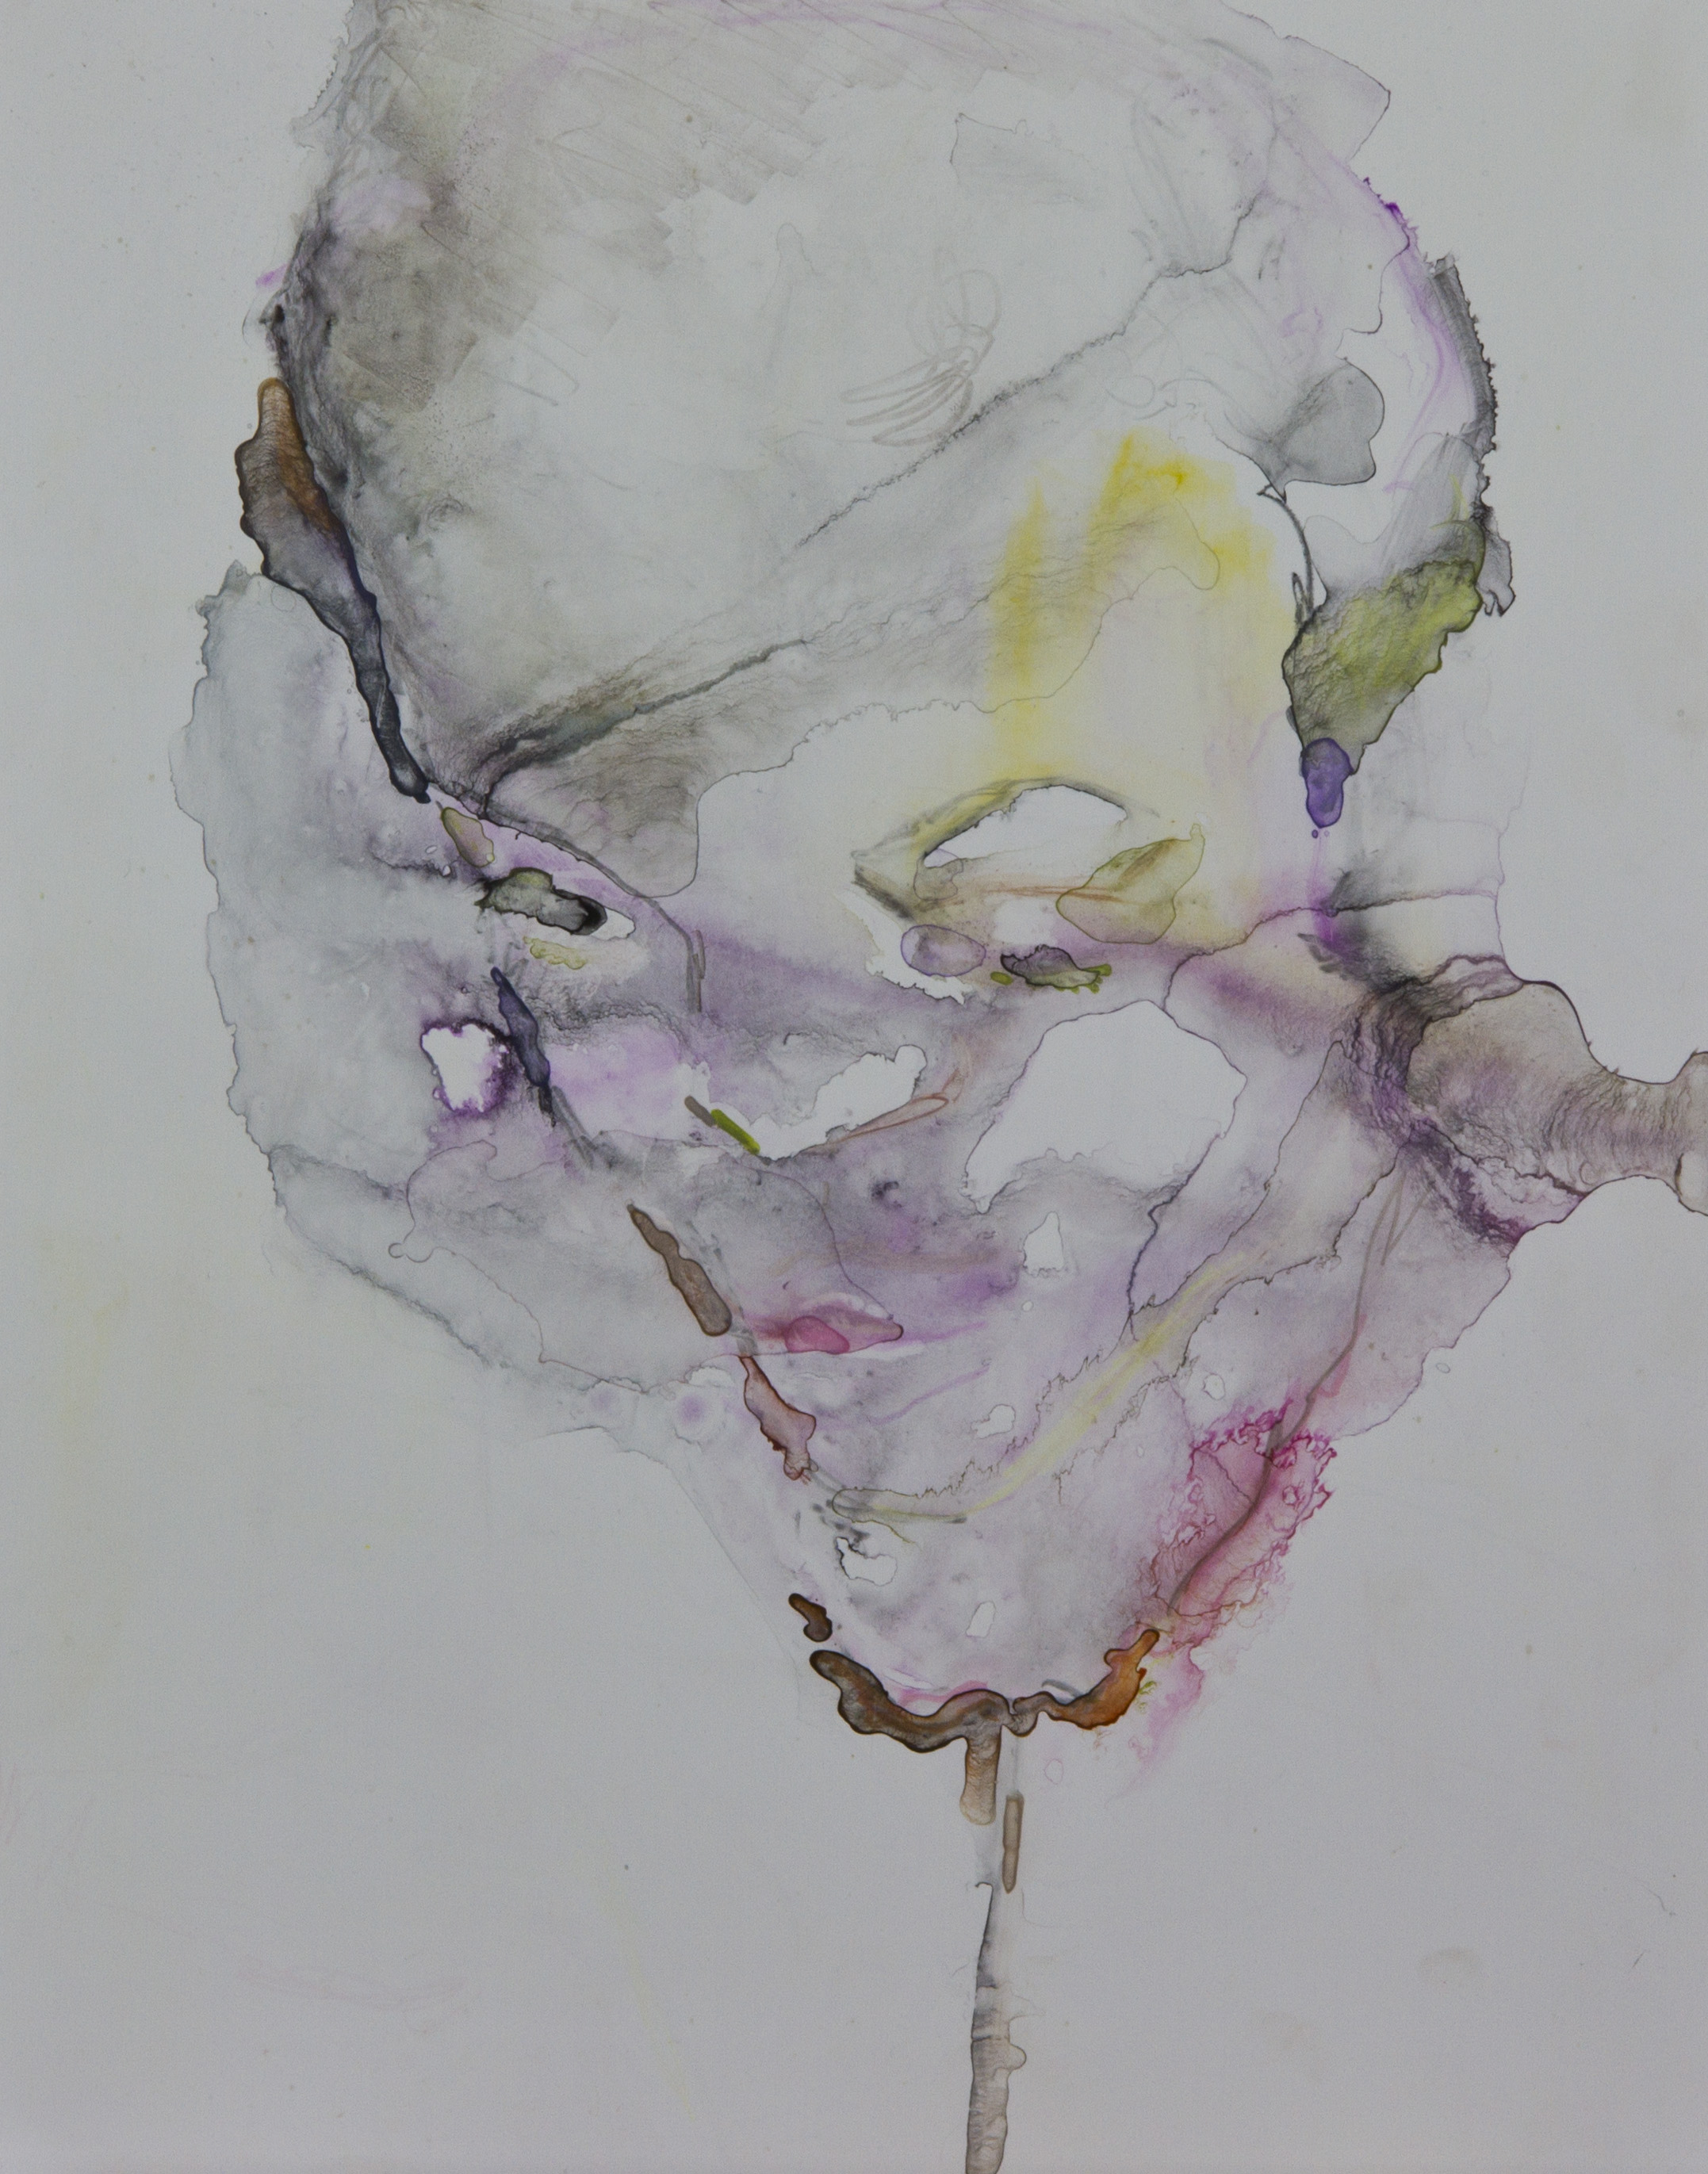 Specimen 7, 2011, watercolor on polypropylene, 11x14 inches